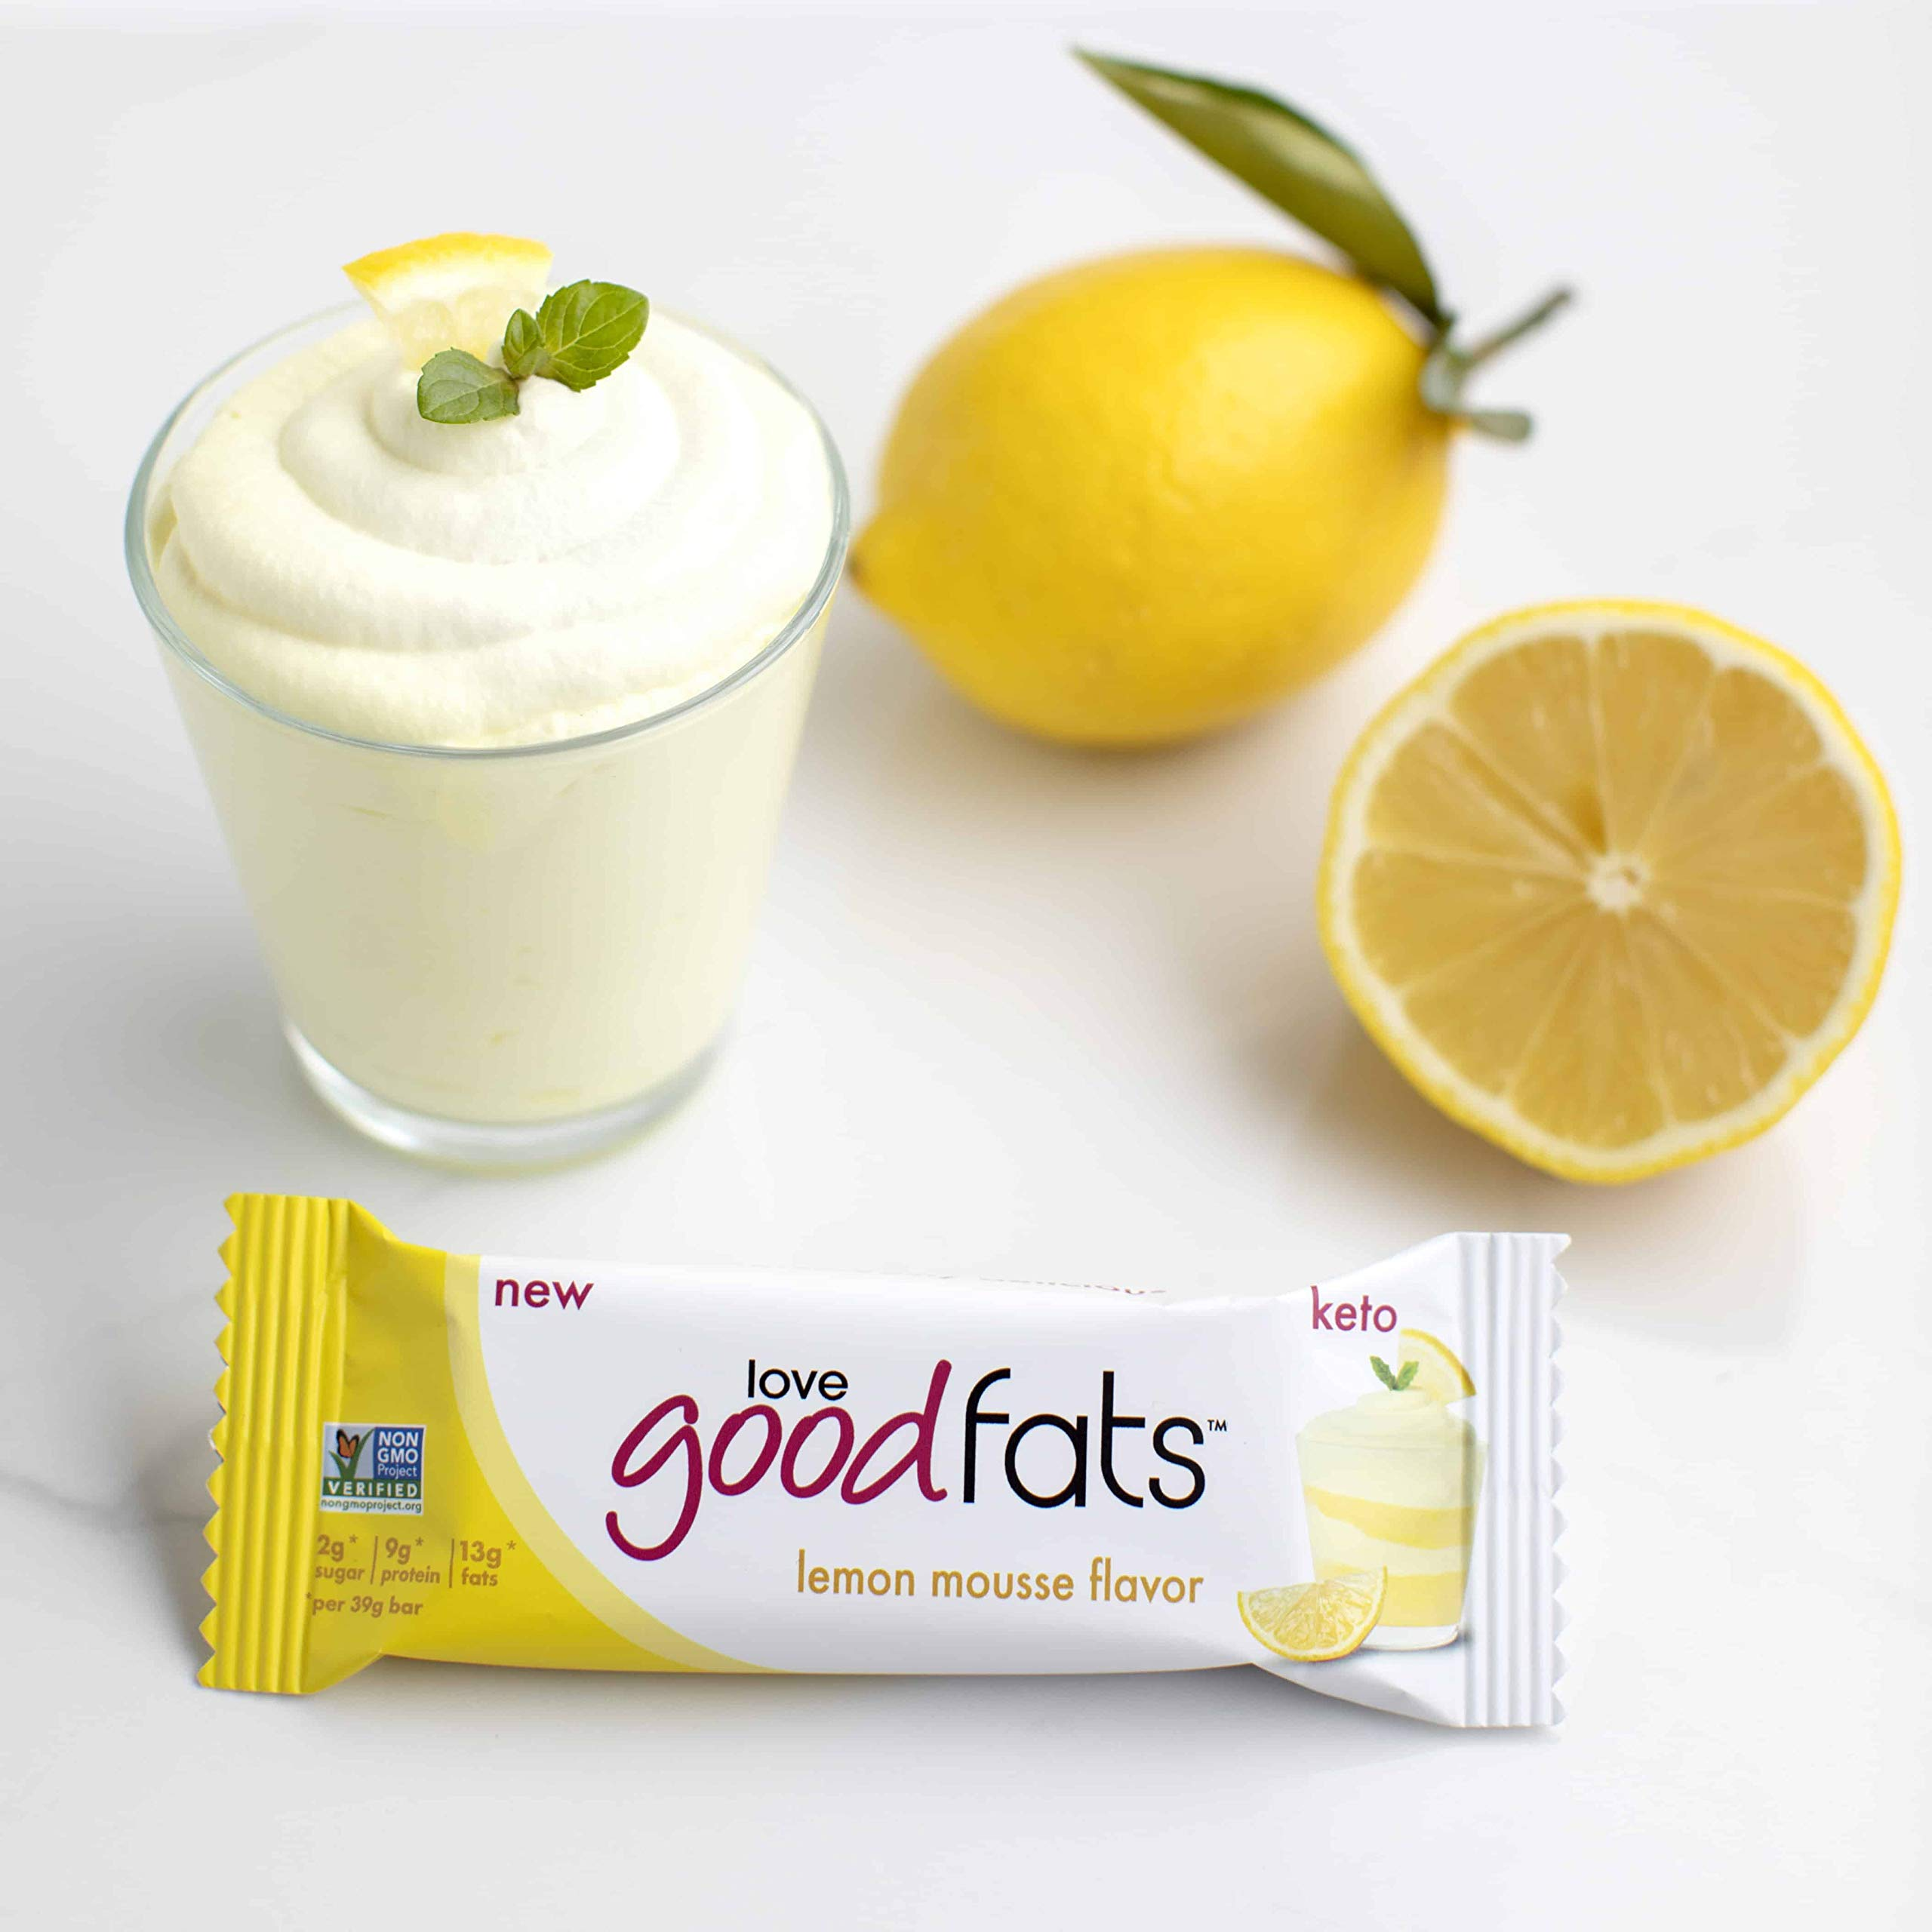 Love Good Fats - Lemon Mousse Keto Bars - Keto Friendly Protein Bars with Natural Ingredients - Gluten-Free, Low Carb Ketogenic Bar with 9g of Protein and Coconut Oil - 1.32 oz Bars (12 Count)